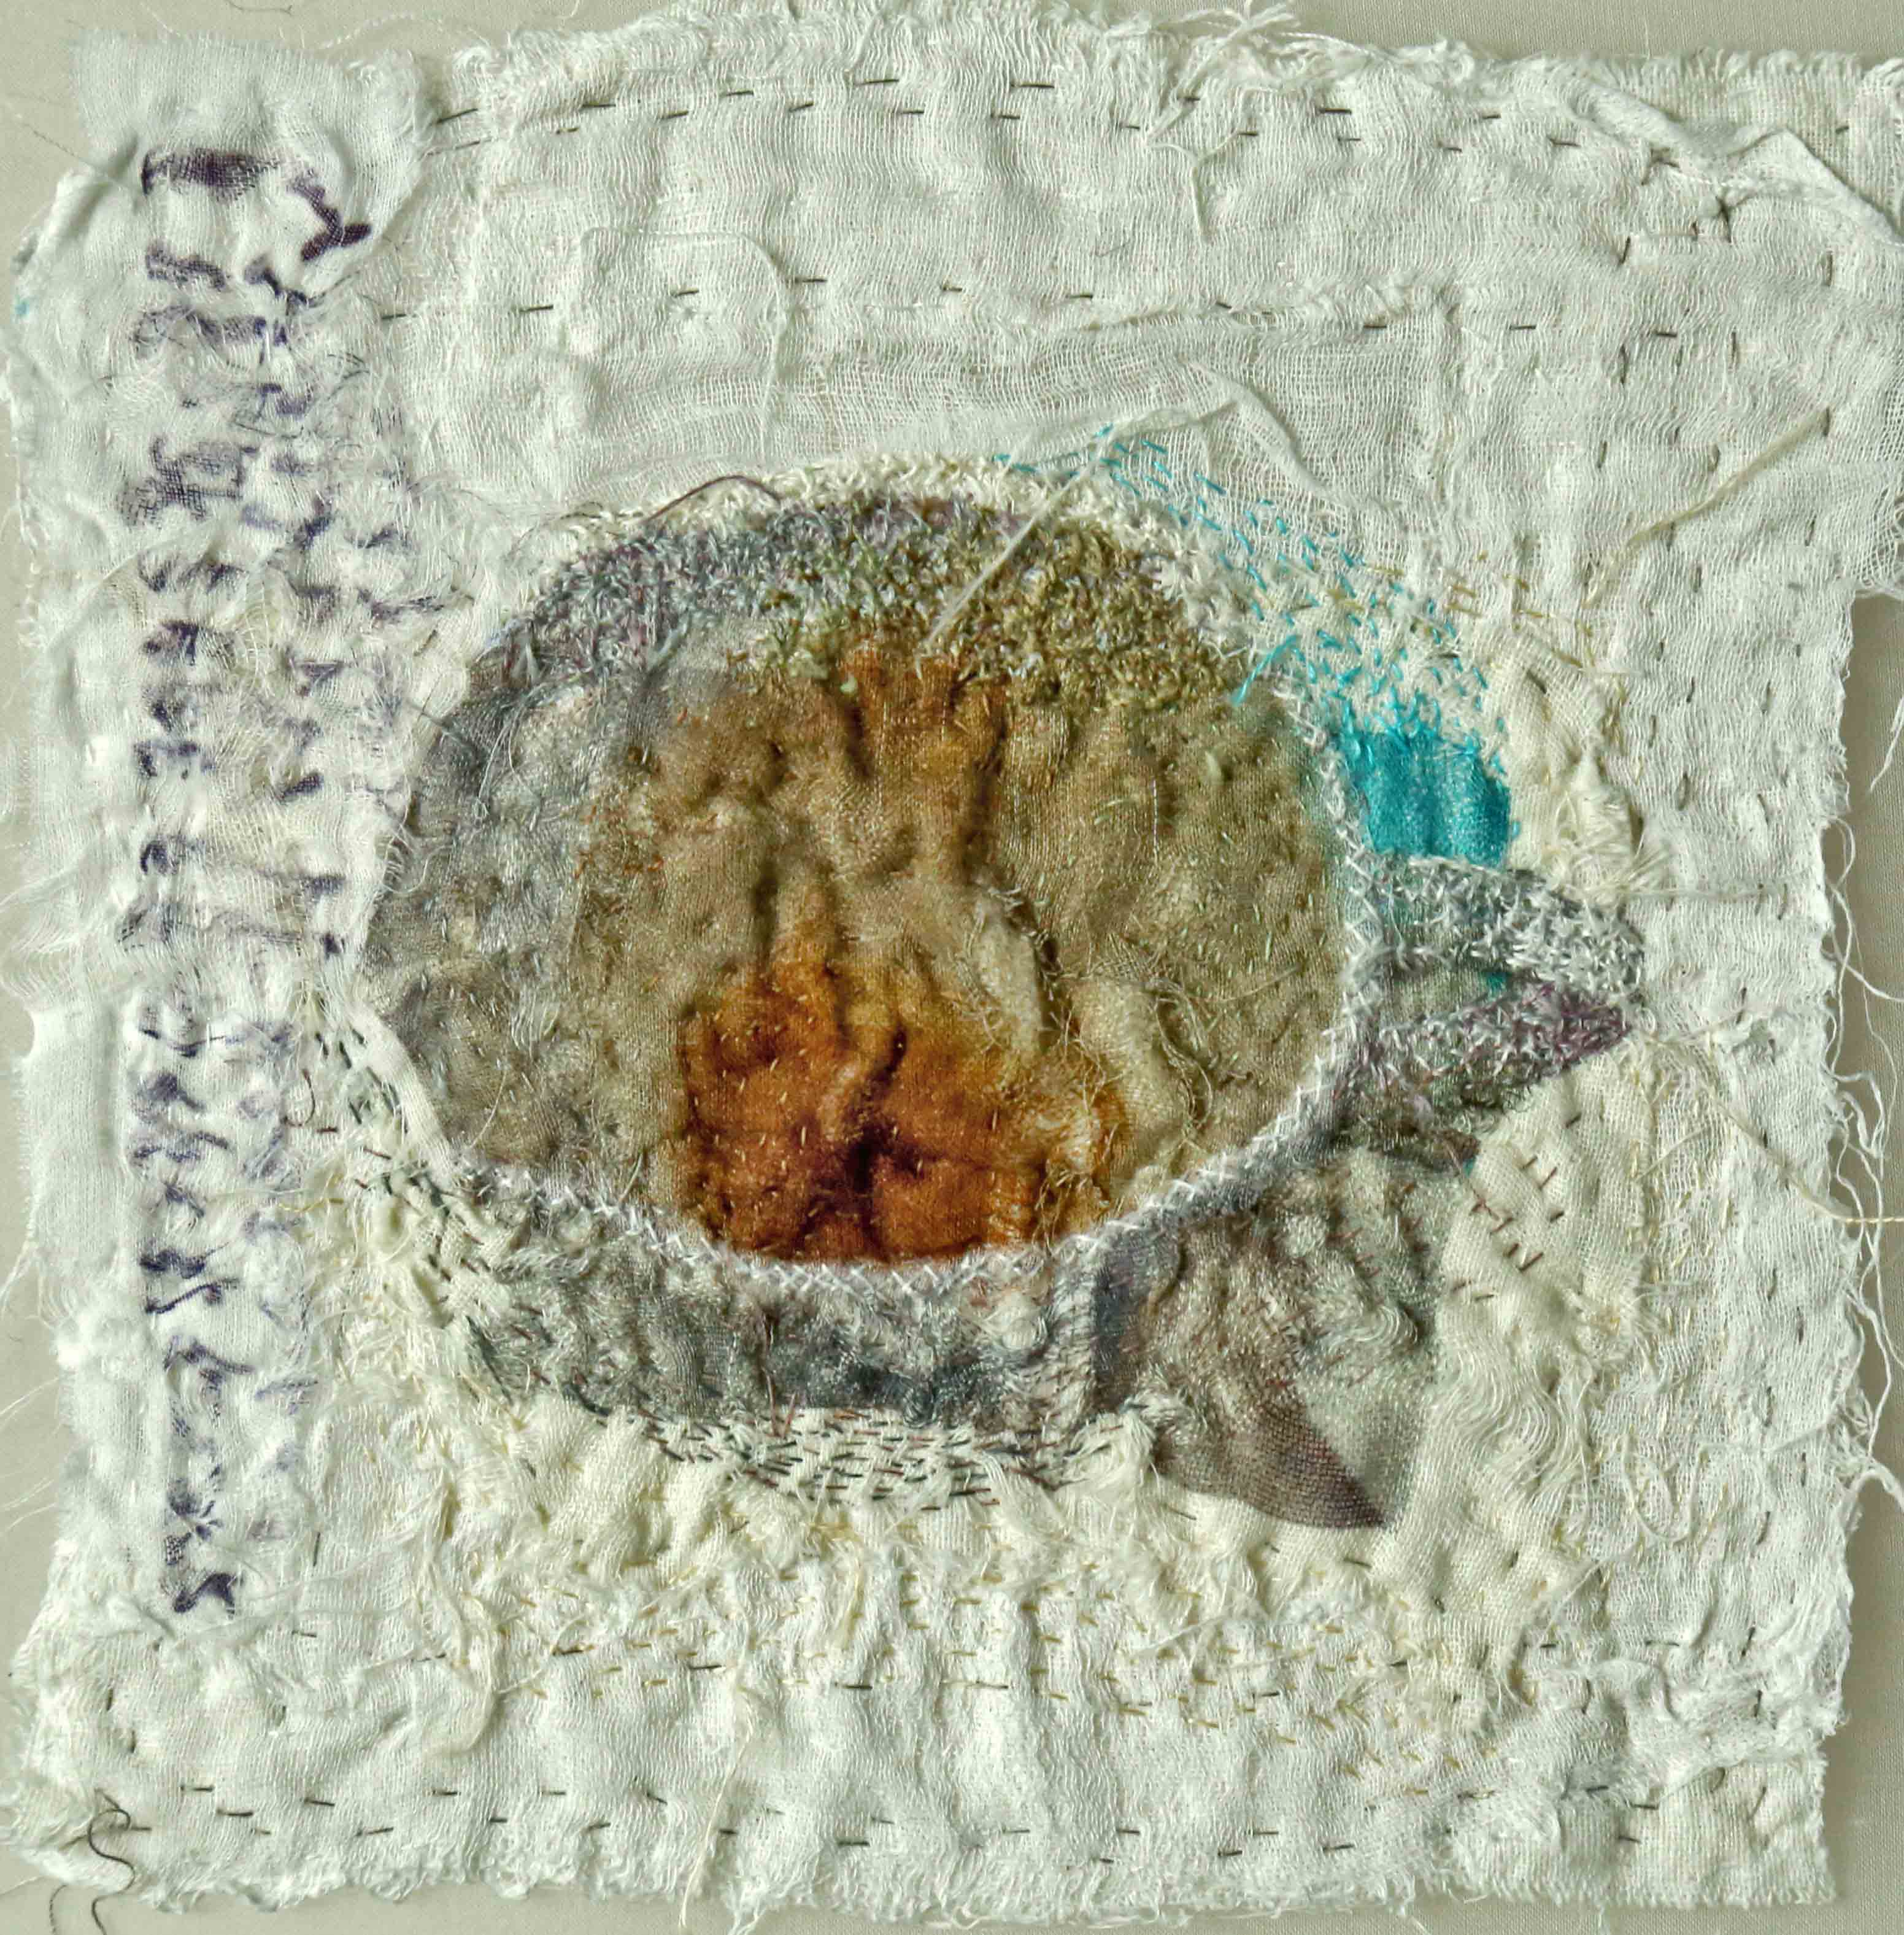 Dregs in Your Tea-cup II, 2010 [7 X 6 Inches - unframed] Materials: cotton voile, cotton floss, cotton-polyester thread, Technique: photography, digital printing, tearing, layering, stitching, embroidery